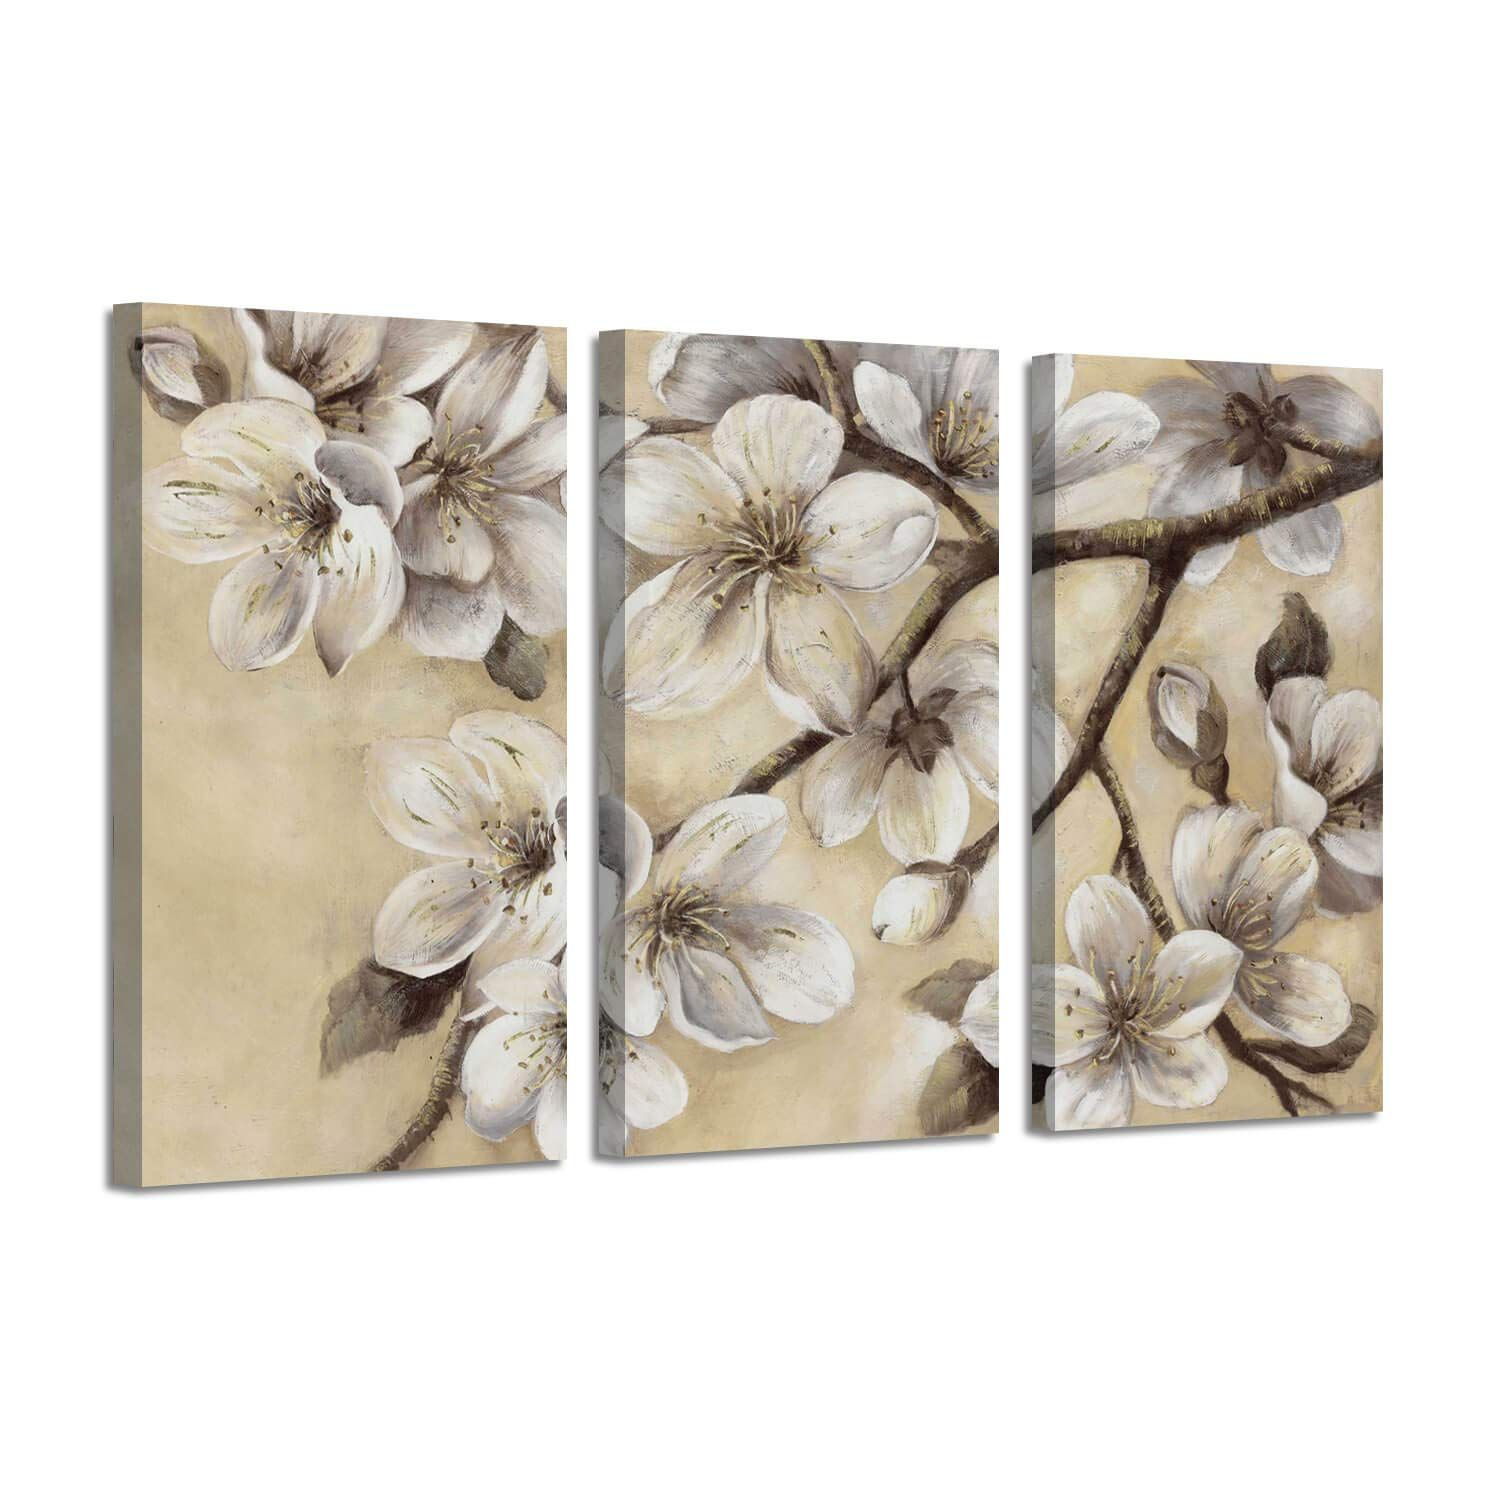 Abstract Floral Wall Art White Magnolia Flower Pictures Print On Canvas For Living Room Bedroom Floral Wall Art Canvases Wall Canvas Painting Canvas Wall Art